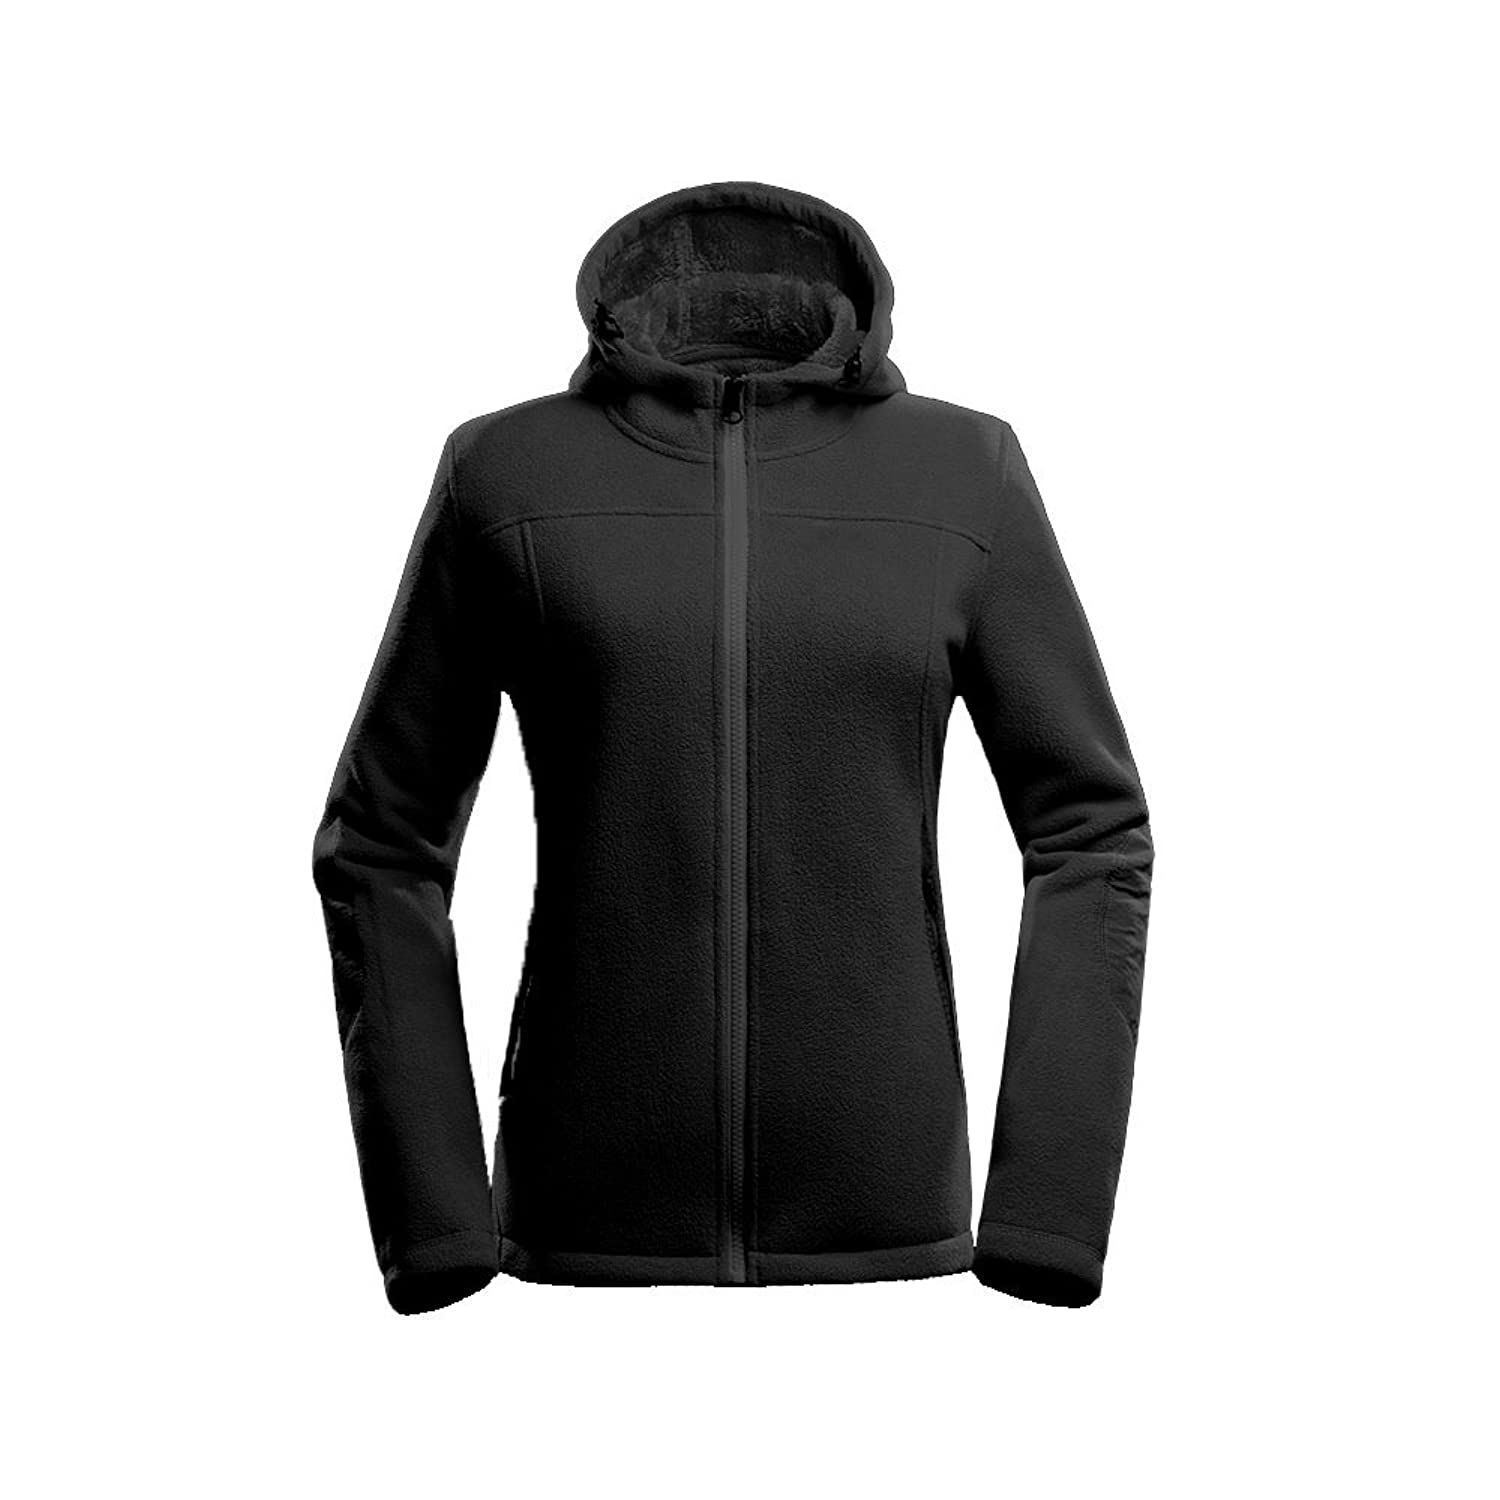 Amazon Best Sellers: Best Women's Fleece Jackets & Coats